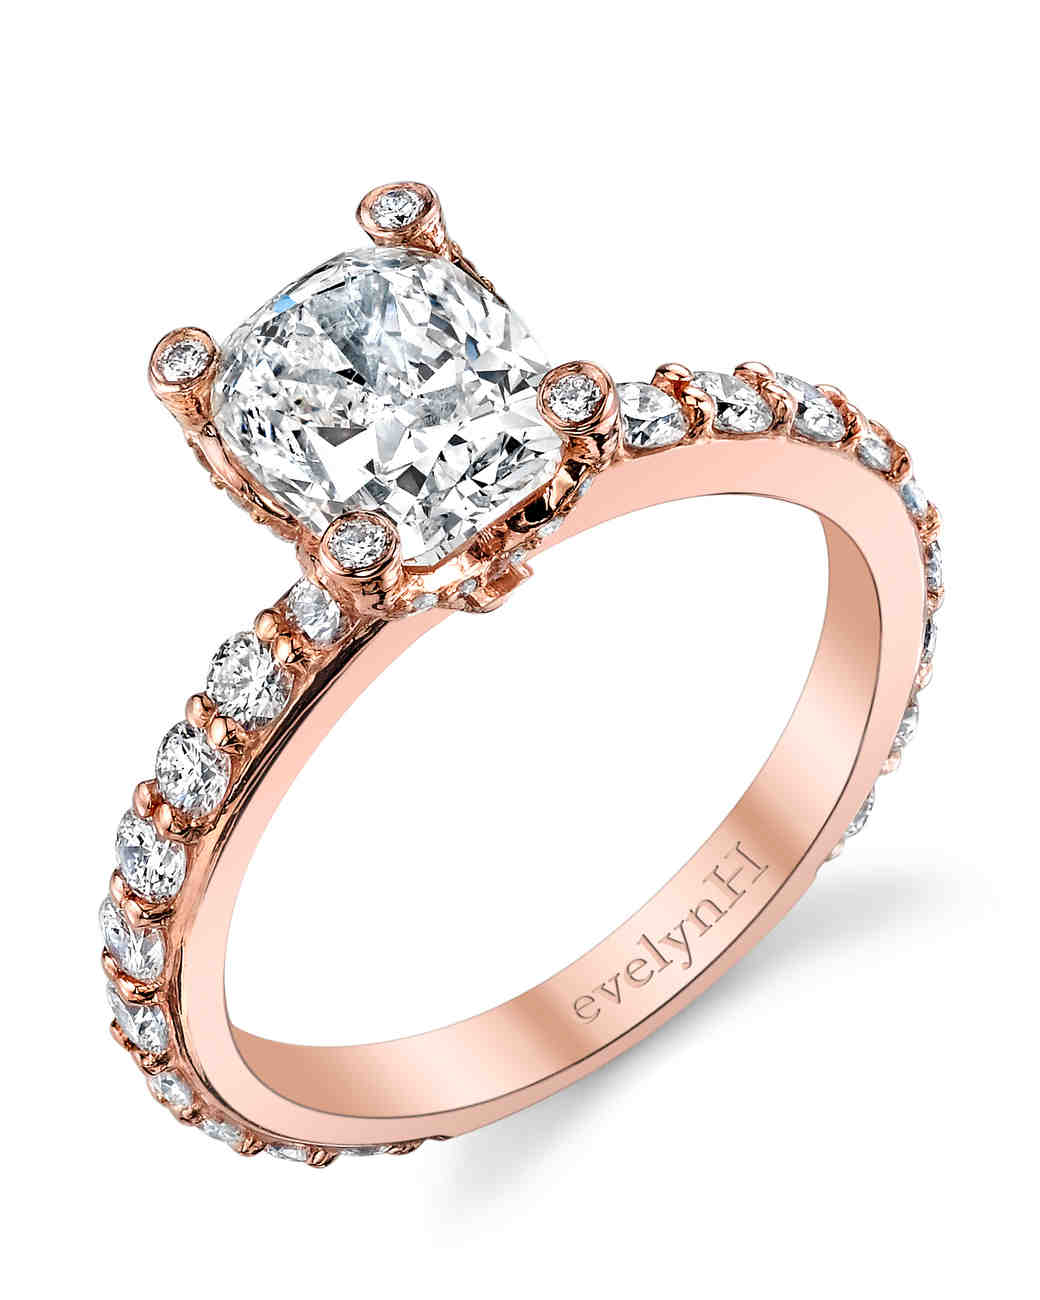 EvelynH Jewelry rose gold diamond pave band engagement ring